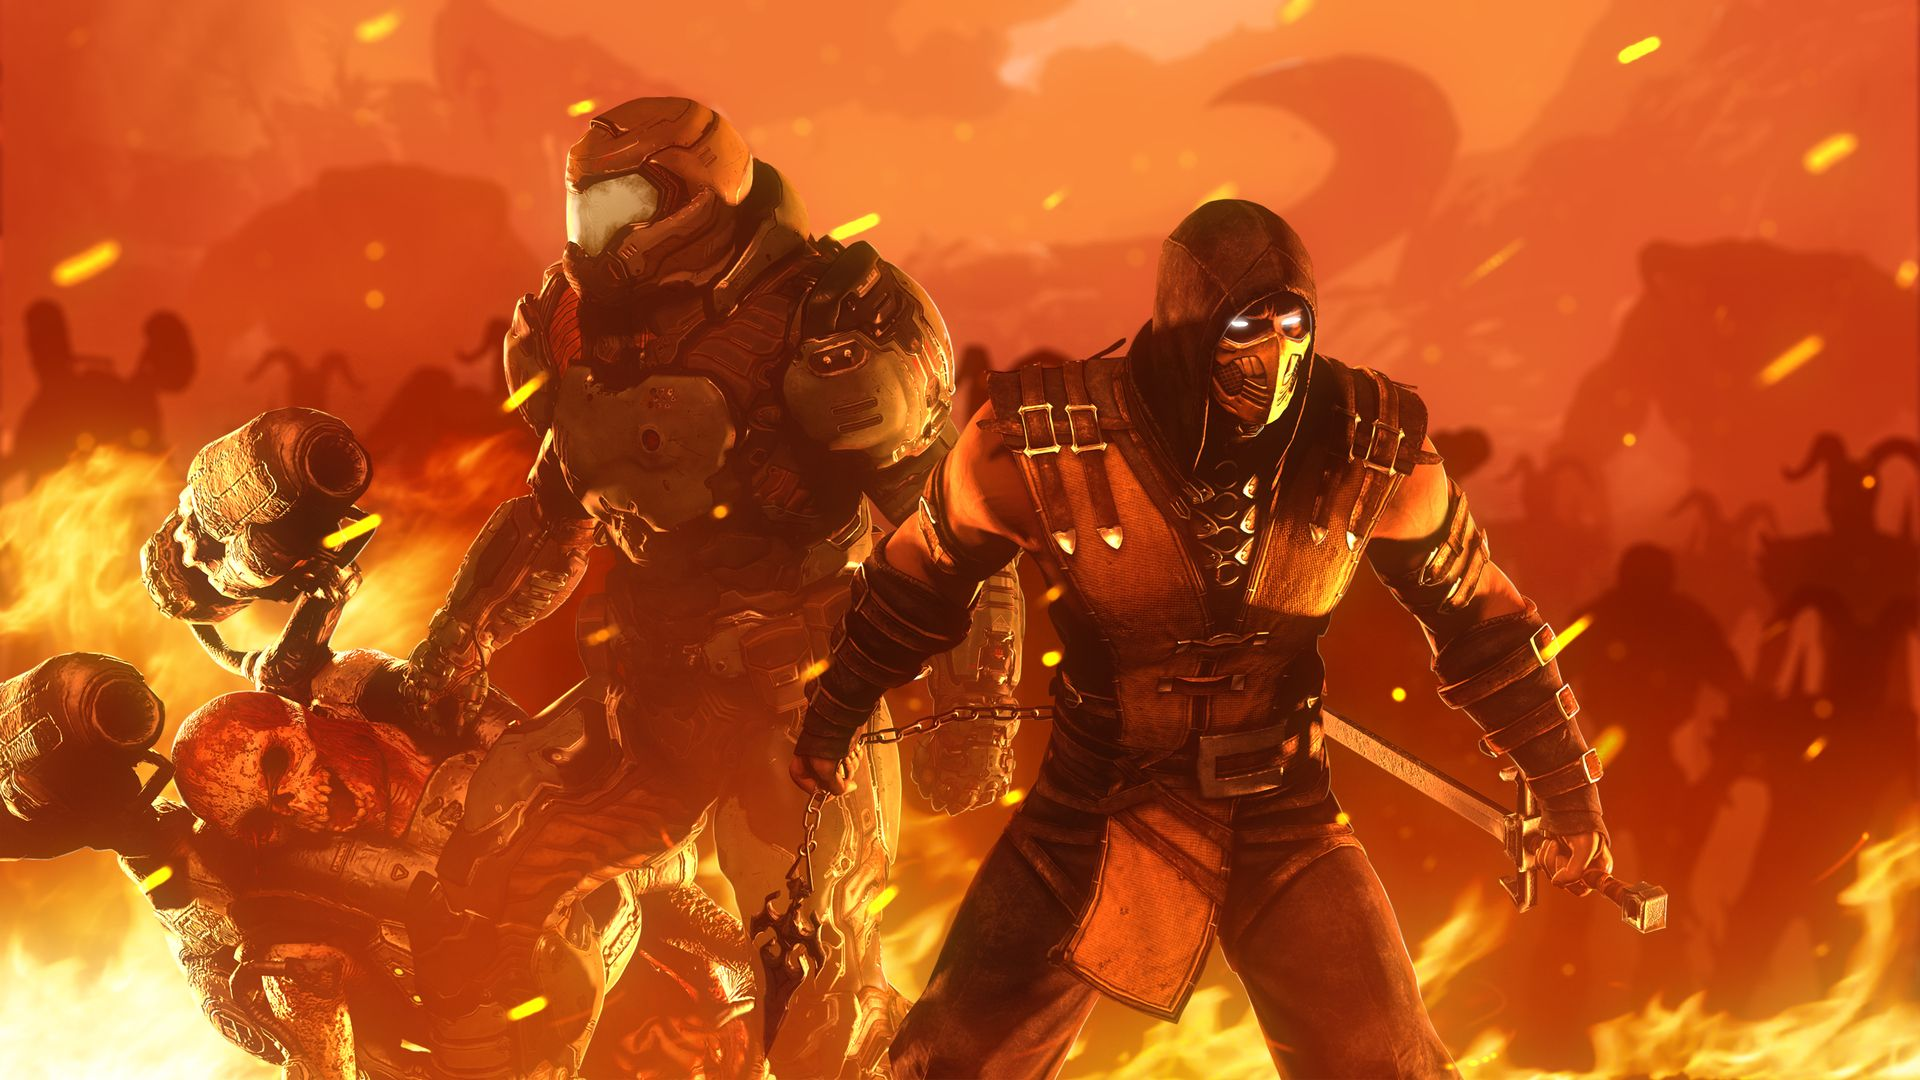 7680 Doom Slayer Wallpapers - Top Free 7680 Doom Slayer